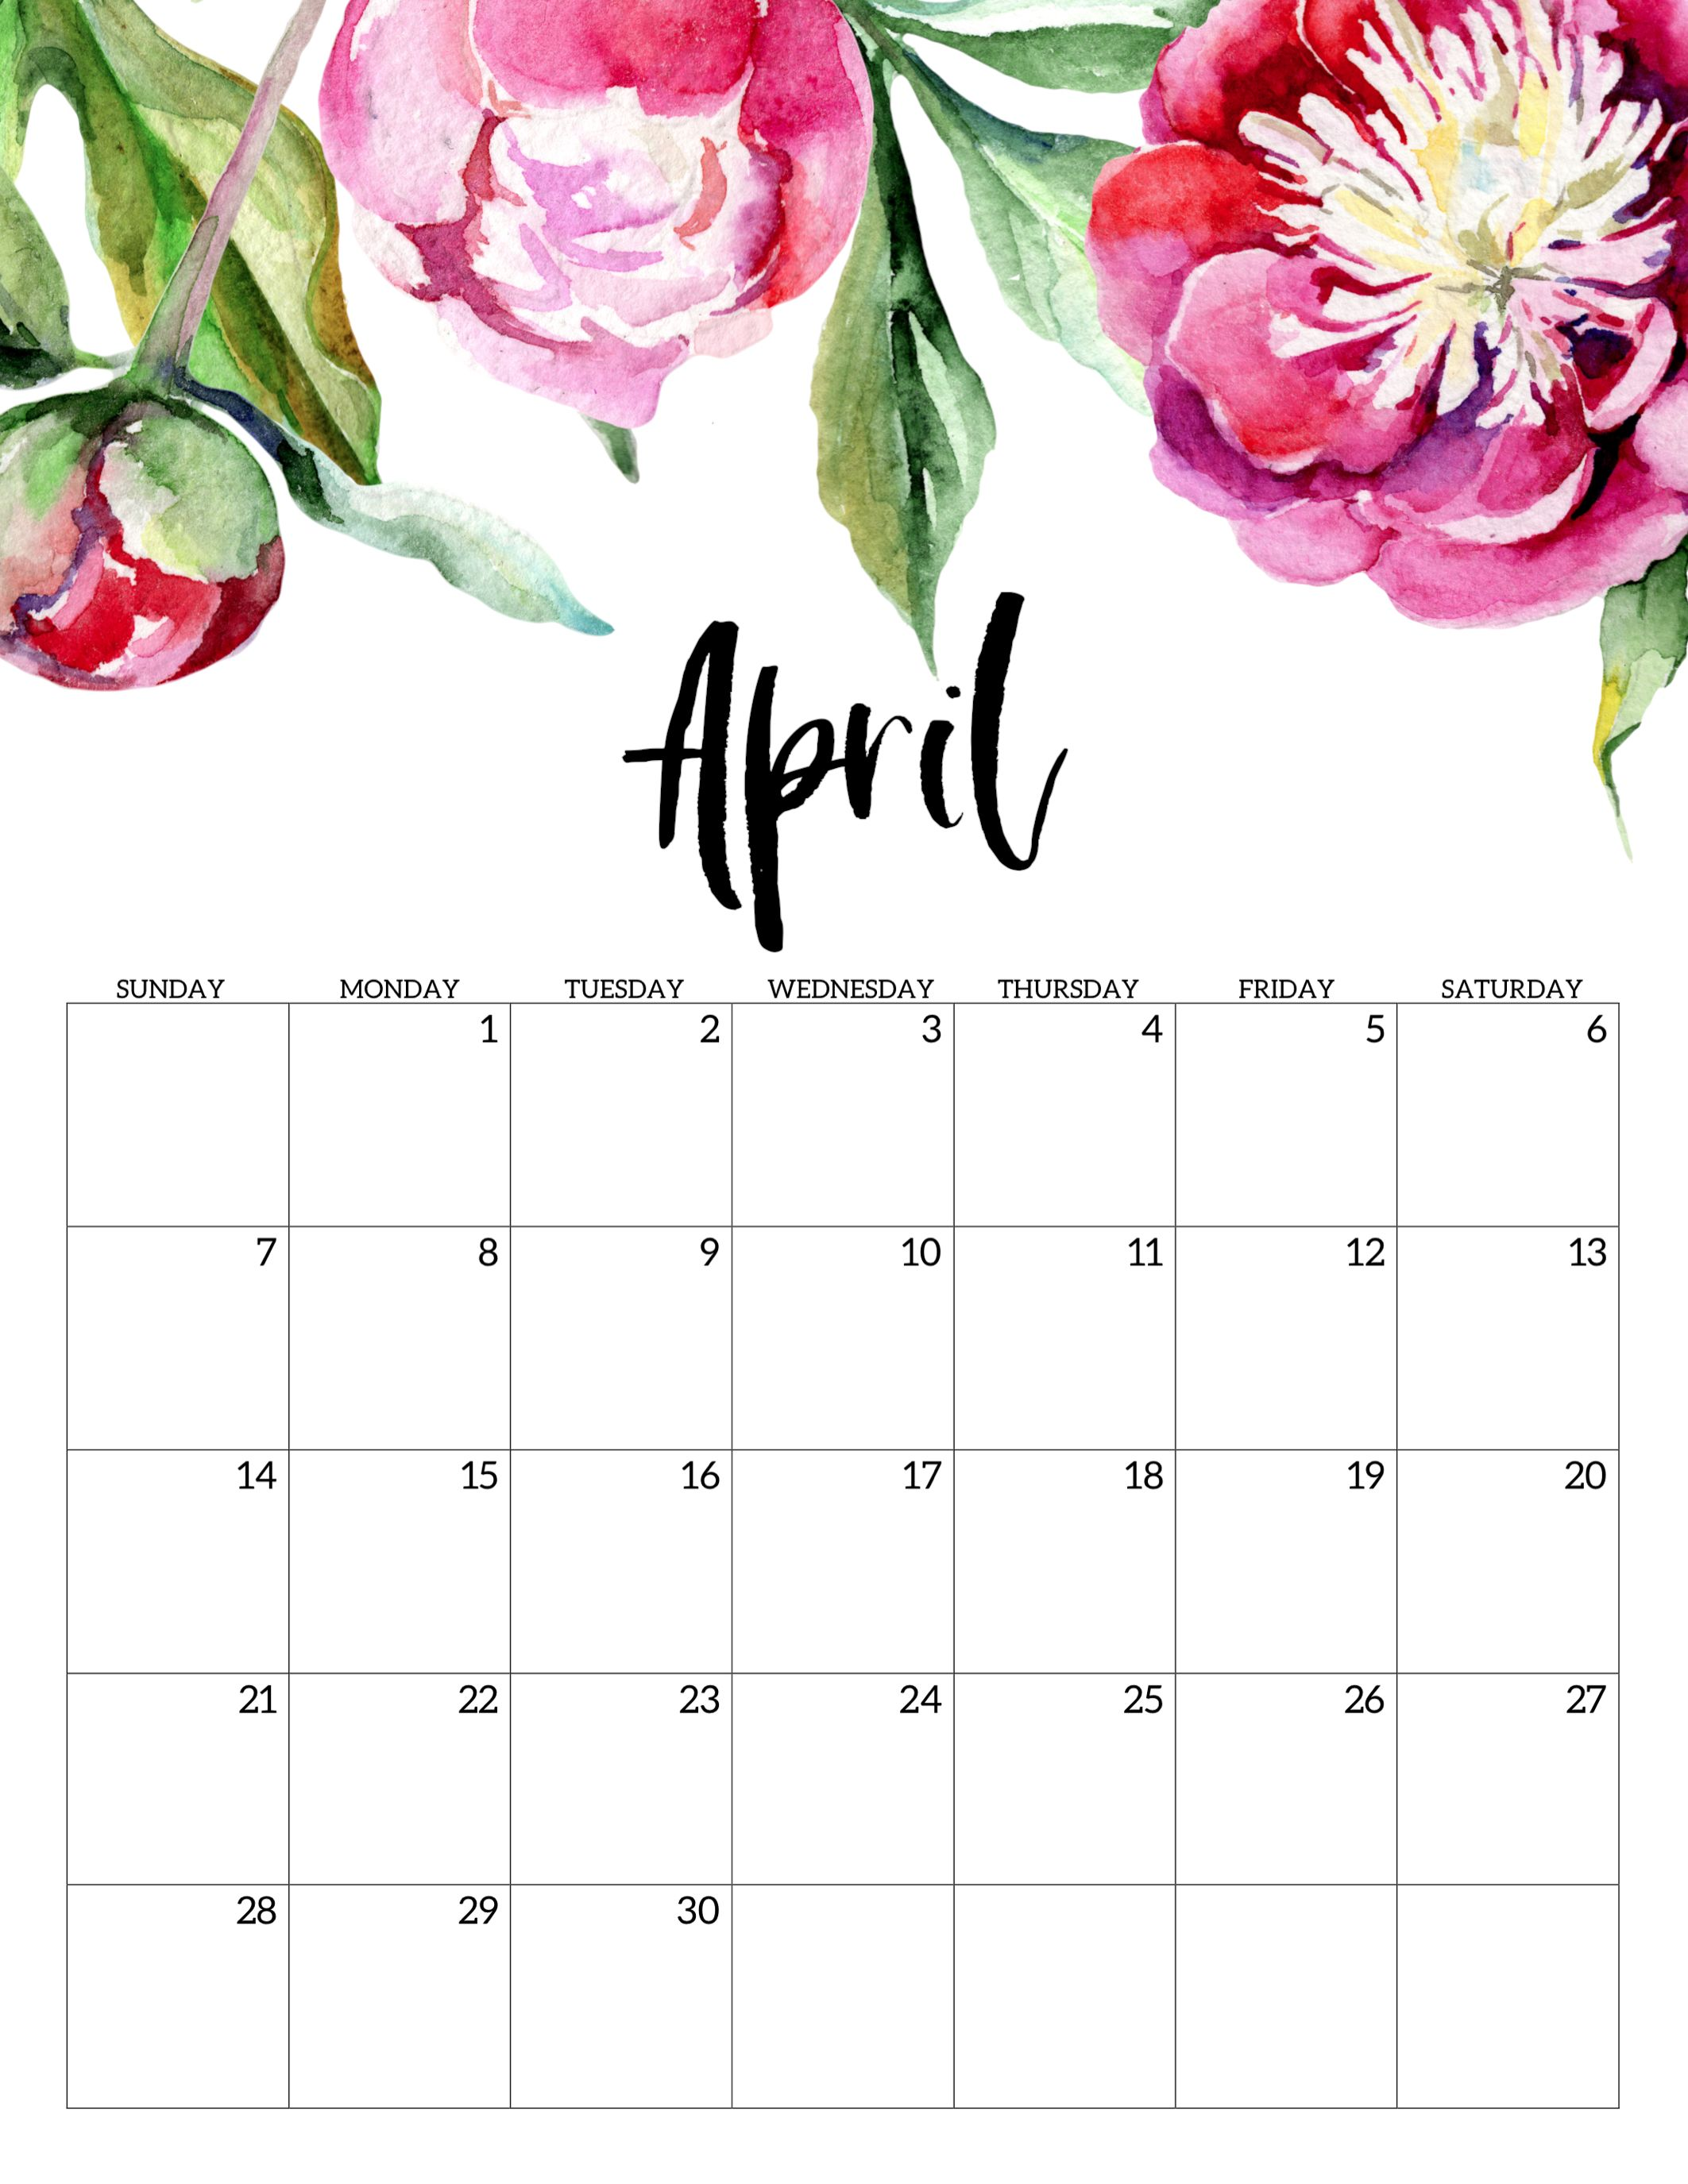 image about Free Printable April Calendar identified as Adorable April 2019 Floral Calendar April 2019 Calendar No cost